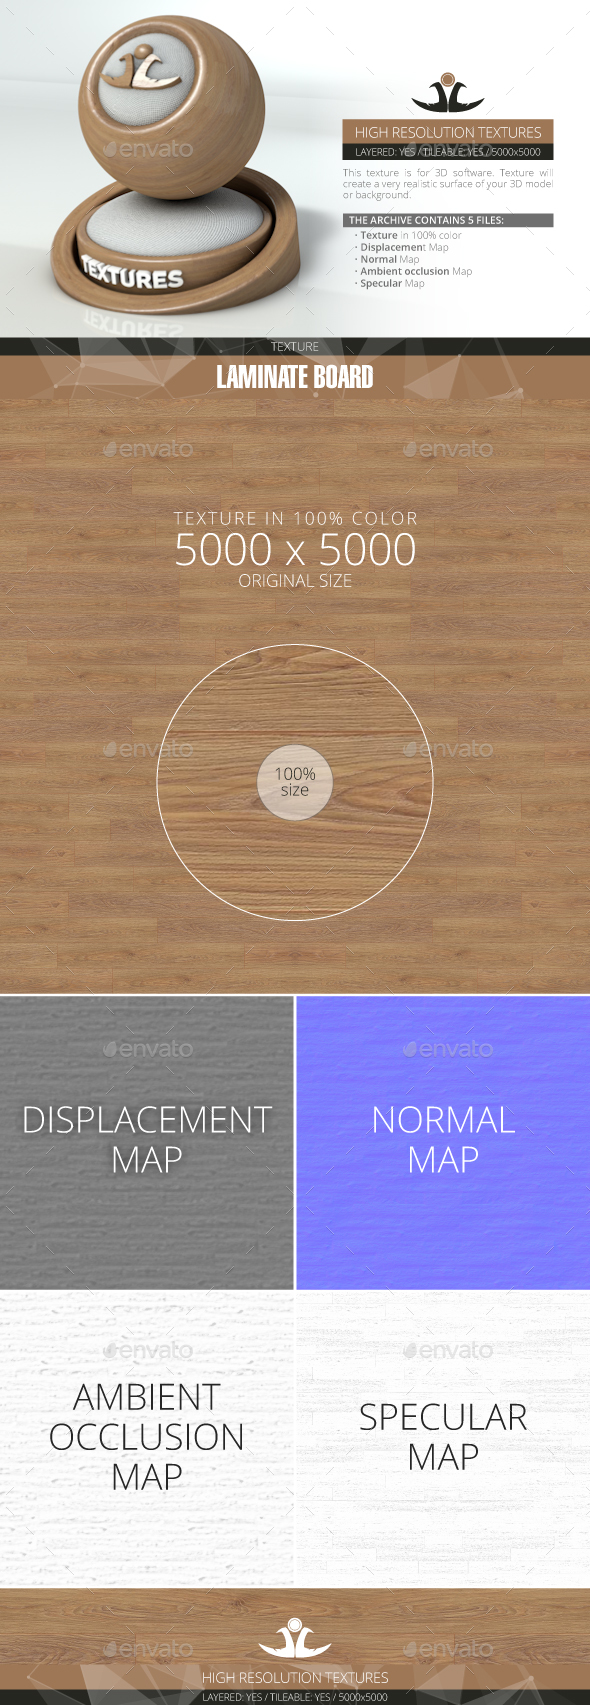 Laminate Board 51 - 3DOcean Item for Sale